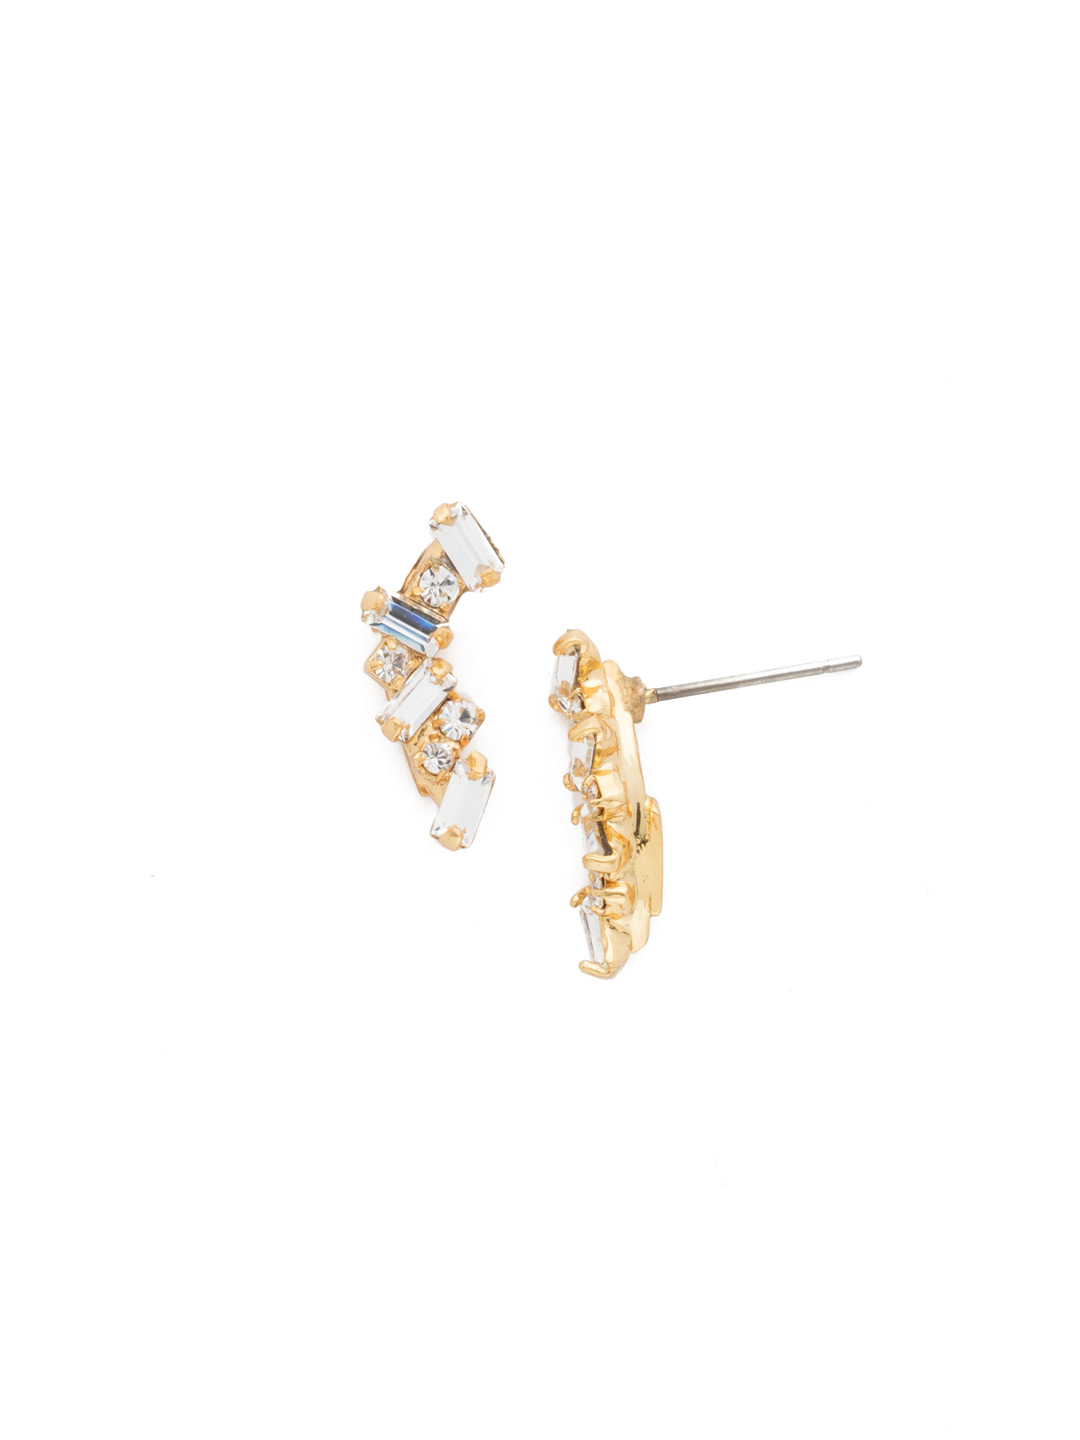 cf1f63d4145 Dotted Line Ear Crawler - Lisa Oswald Collection in Clear Crystal ...